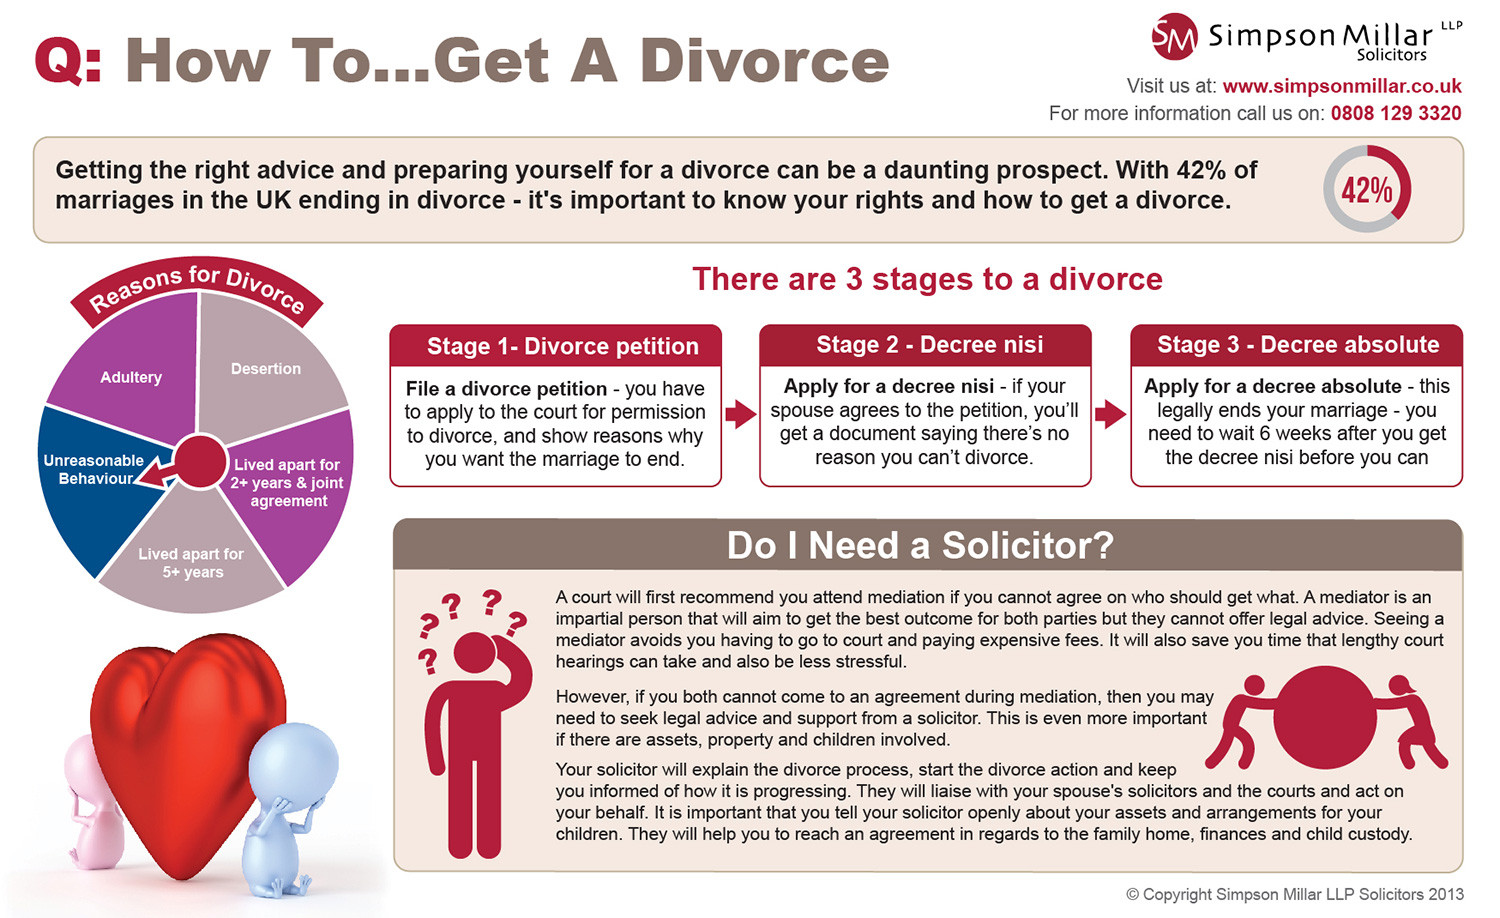 How To Get A Divorce Infographic